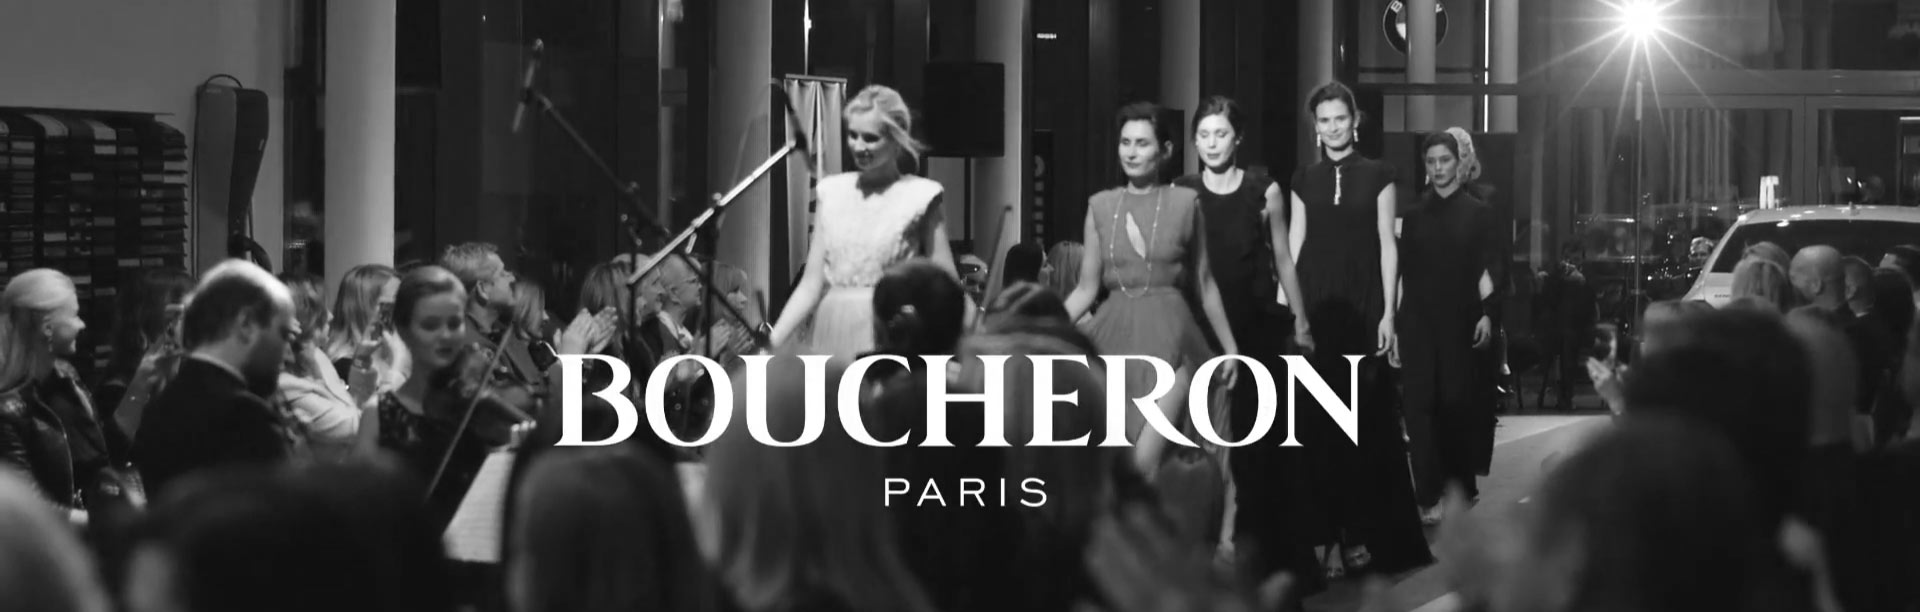 BOUCHERON BMW&MINI FASHION SHOW